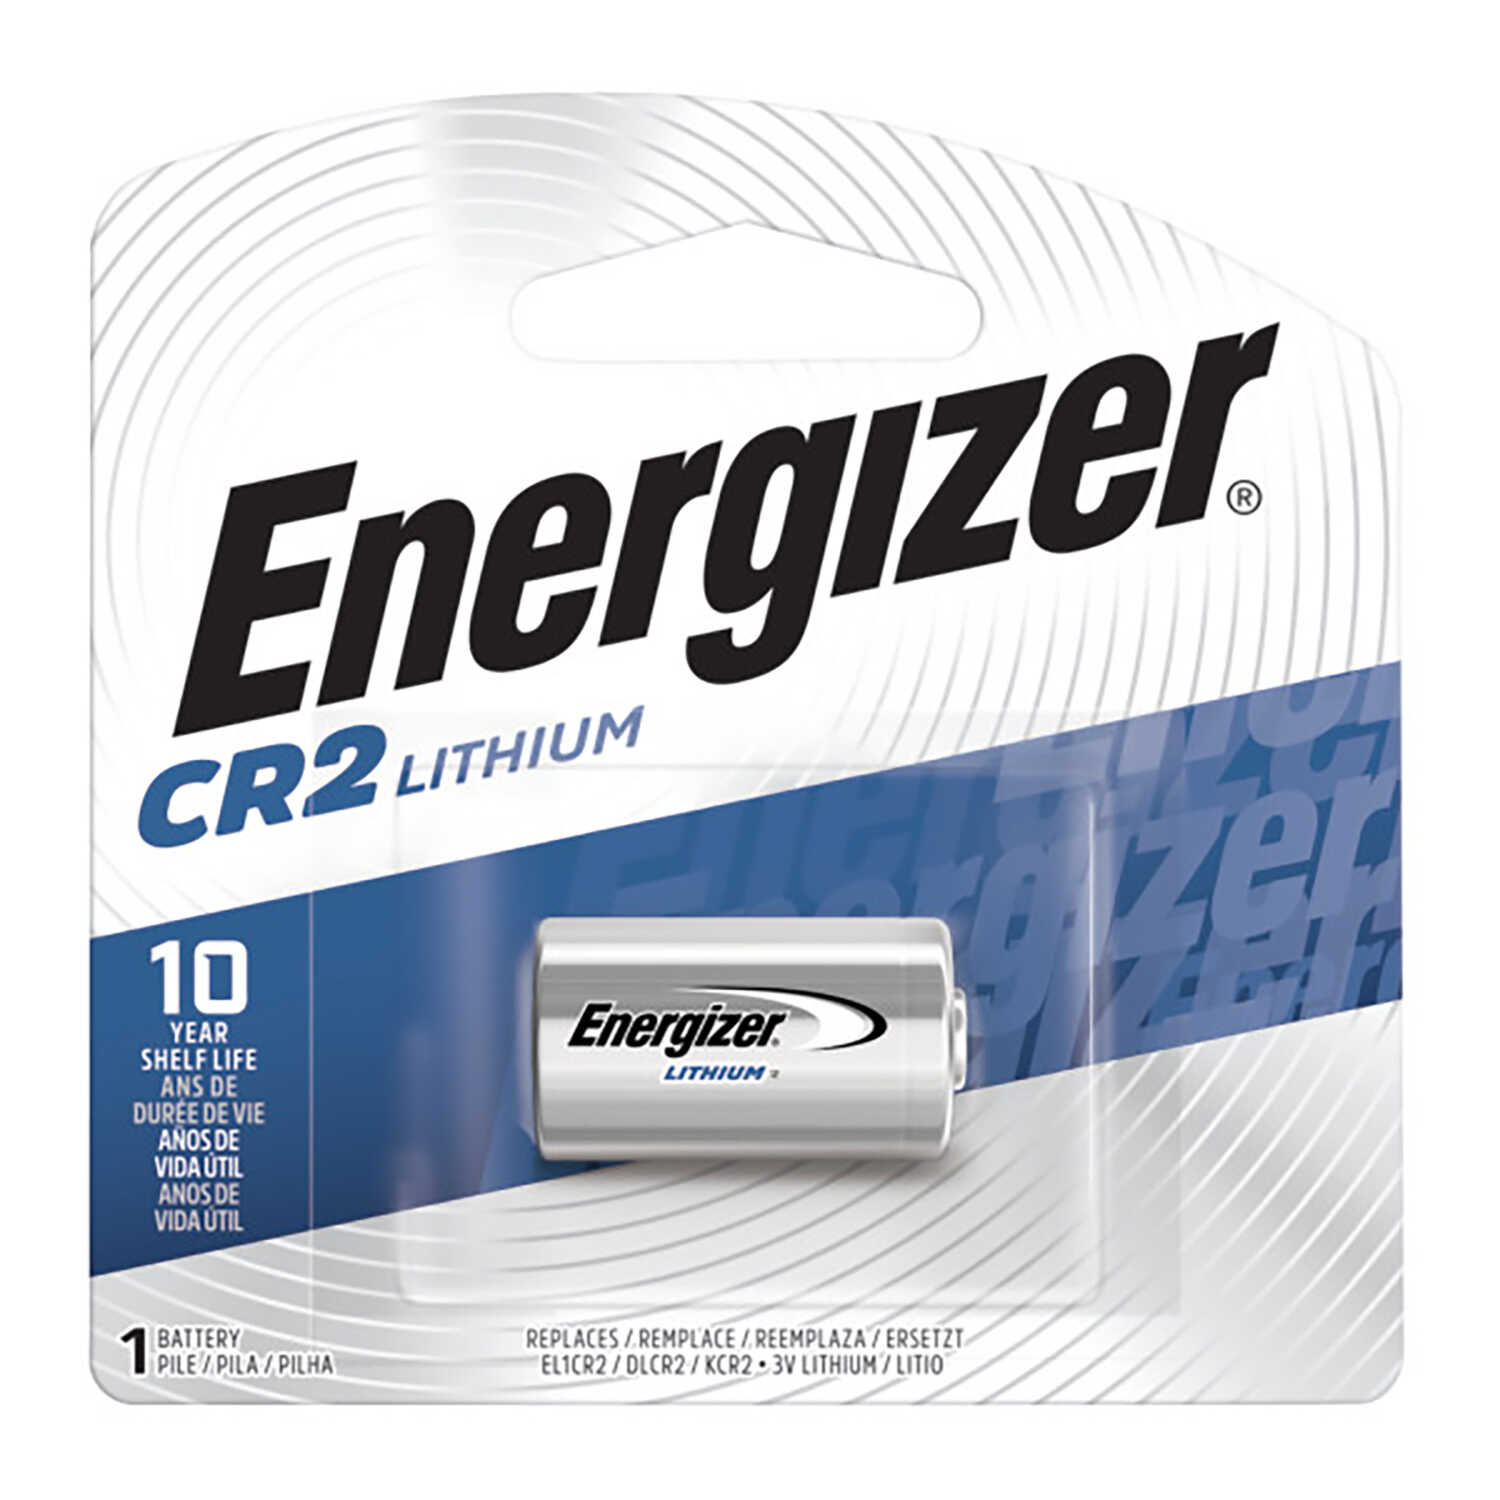 Energizer  Lithium  CR2  3 volt Camera Battery  1 pk